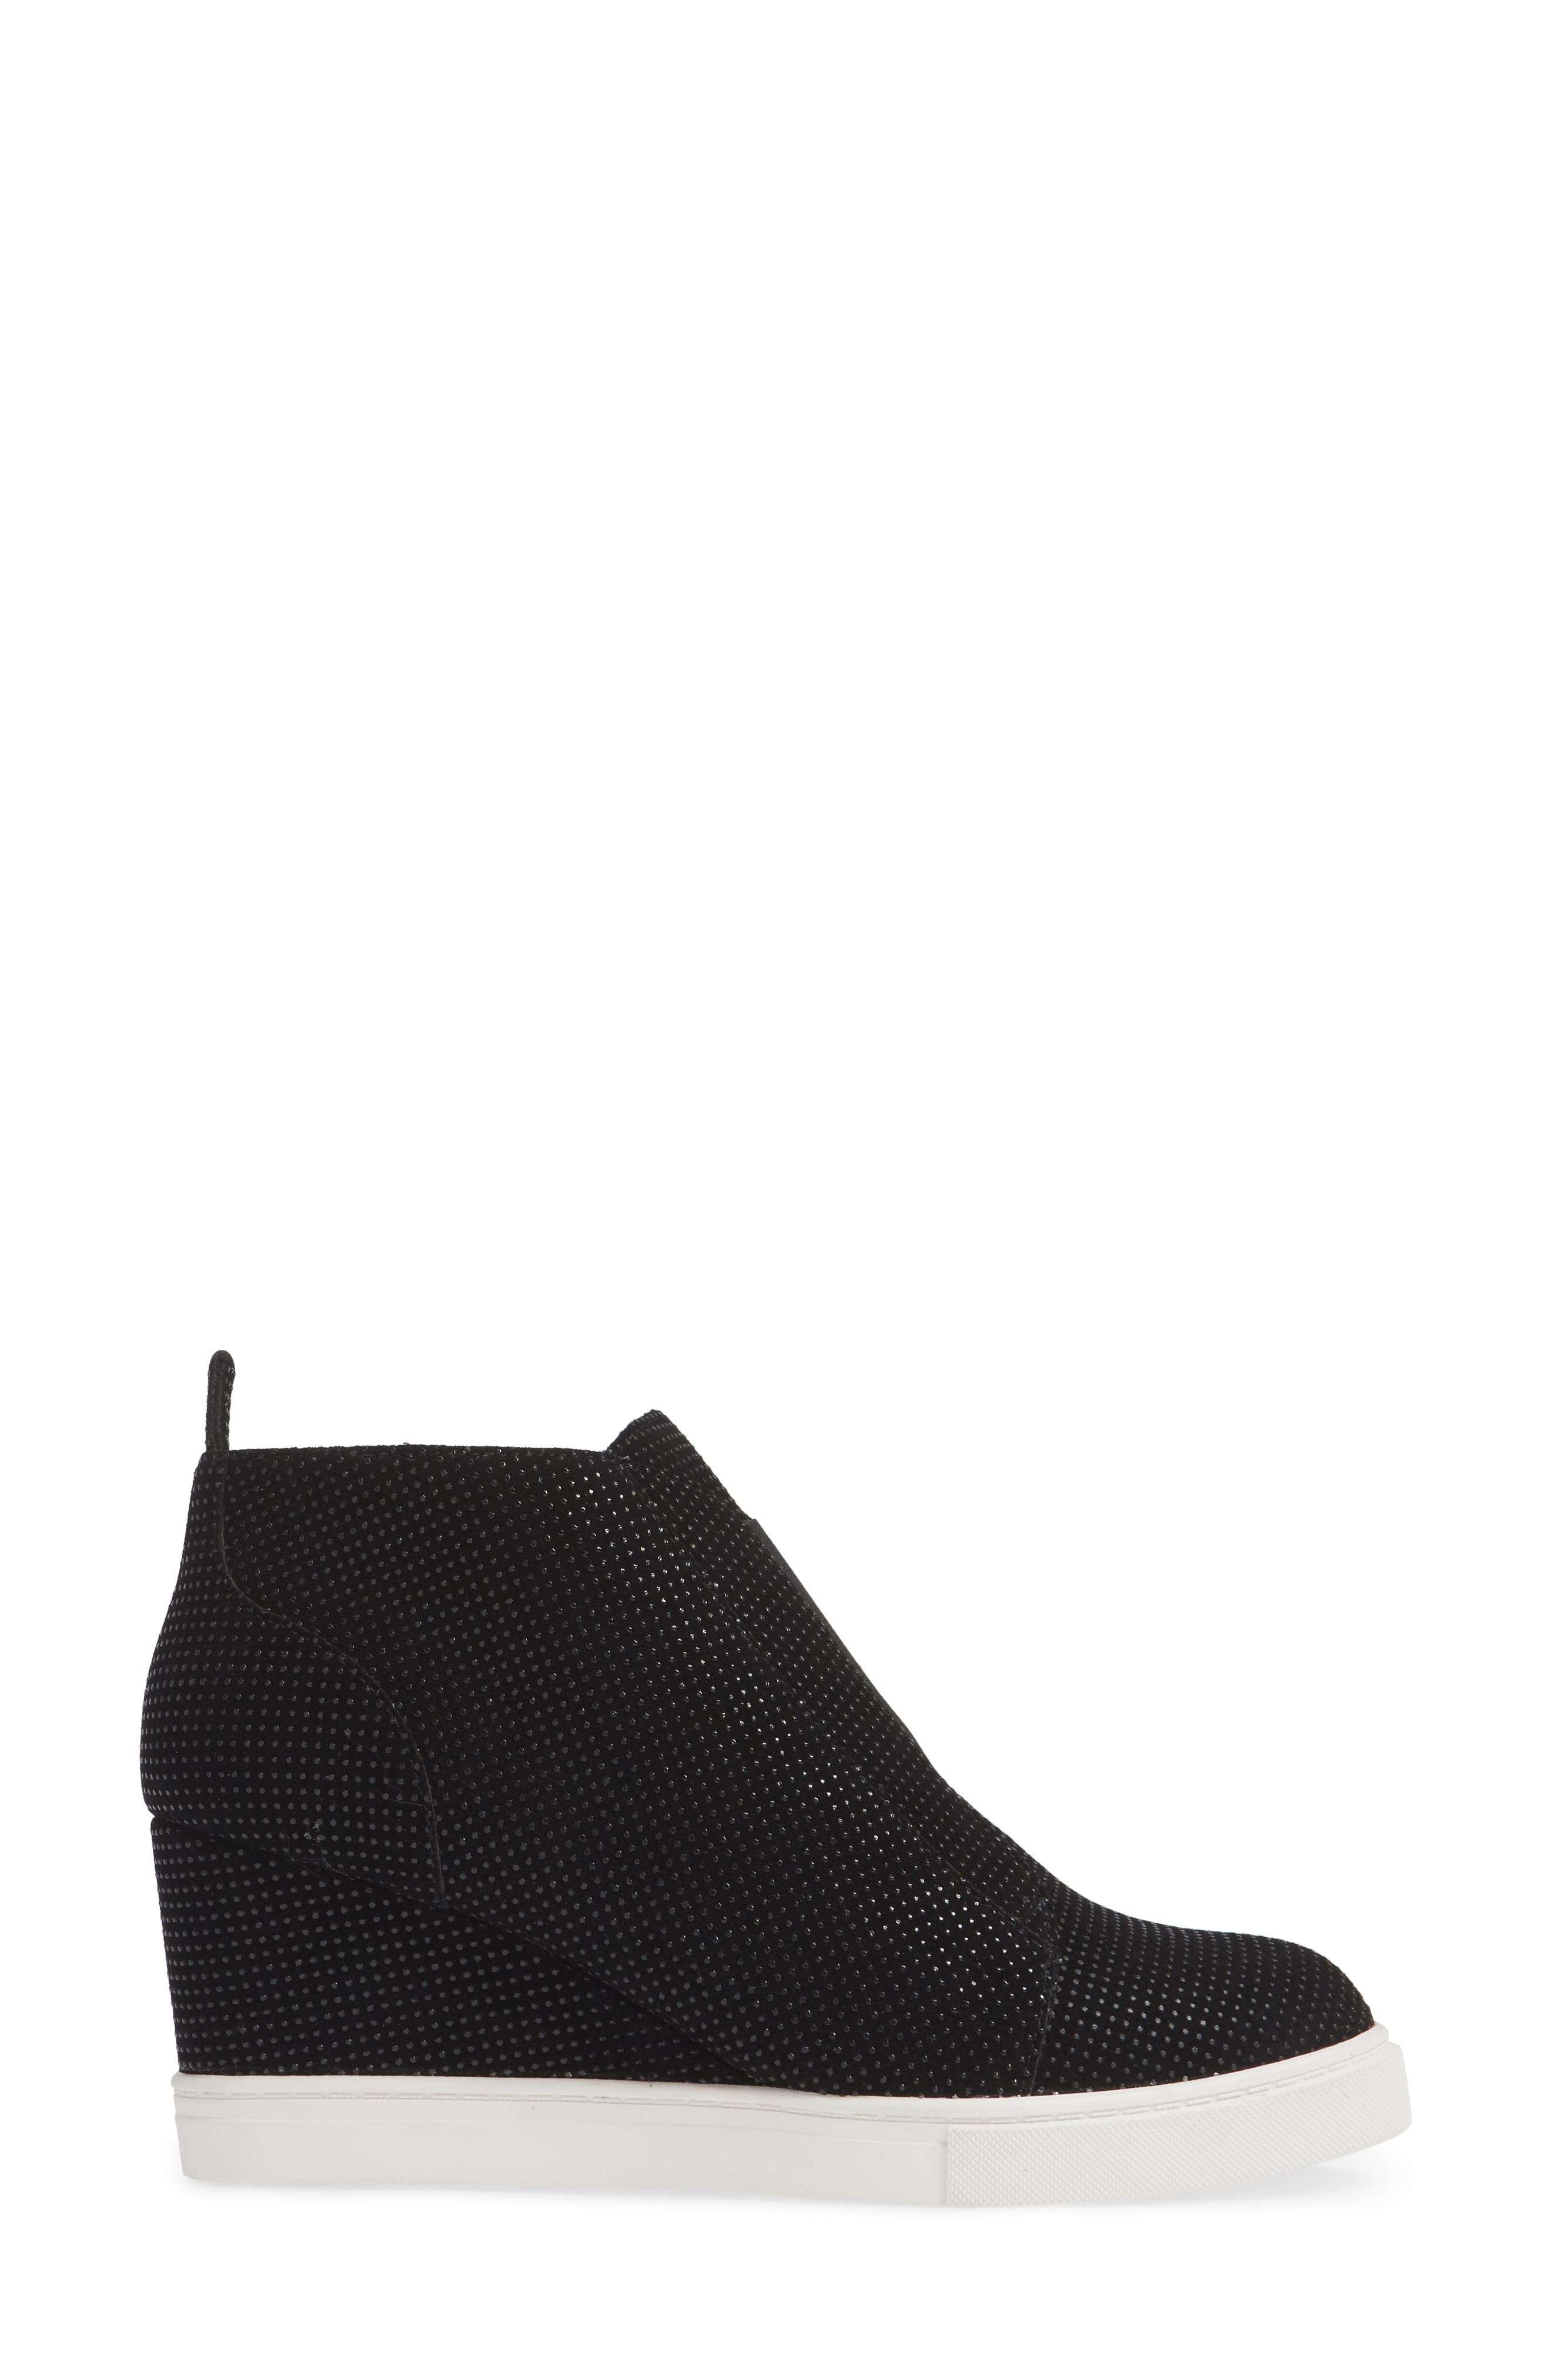 'Felicia' Wedge Bootie,                             Alternate thumbnail 3, color,                             BLACK TEXTURED SUEDE